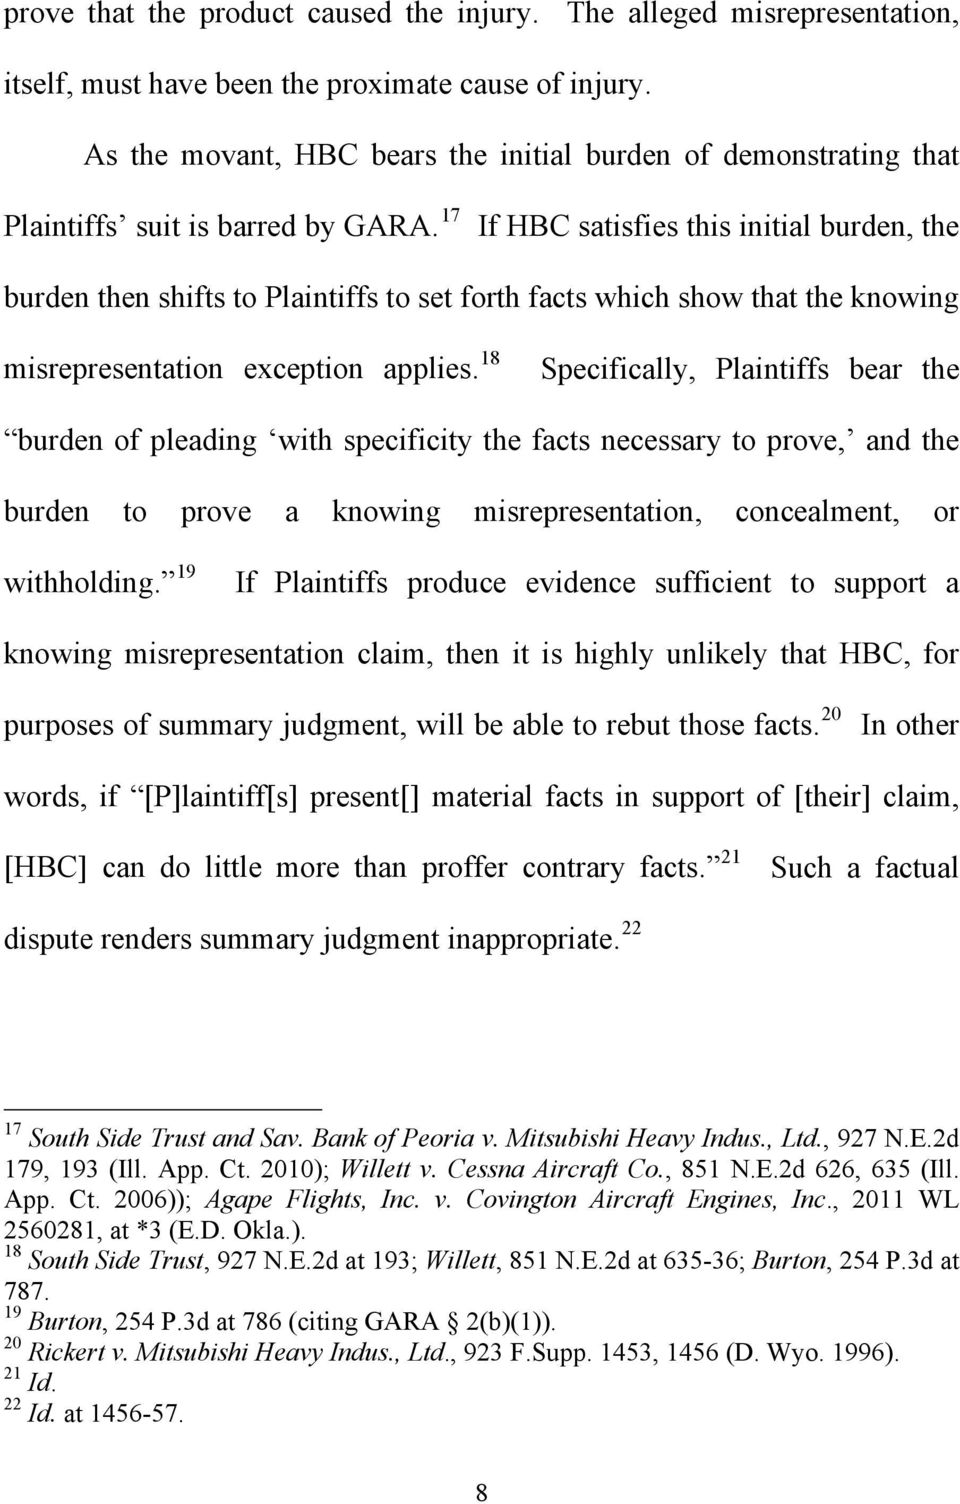 17 If HBC satisfies this initial burden, the burden then shifts to Plaintiffs to set forth facts which show that the knowing misrepresentation exception applies.